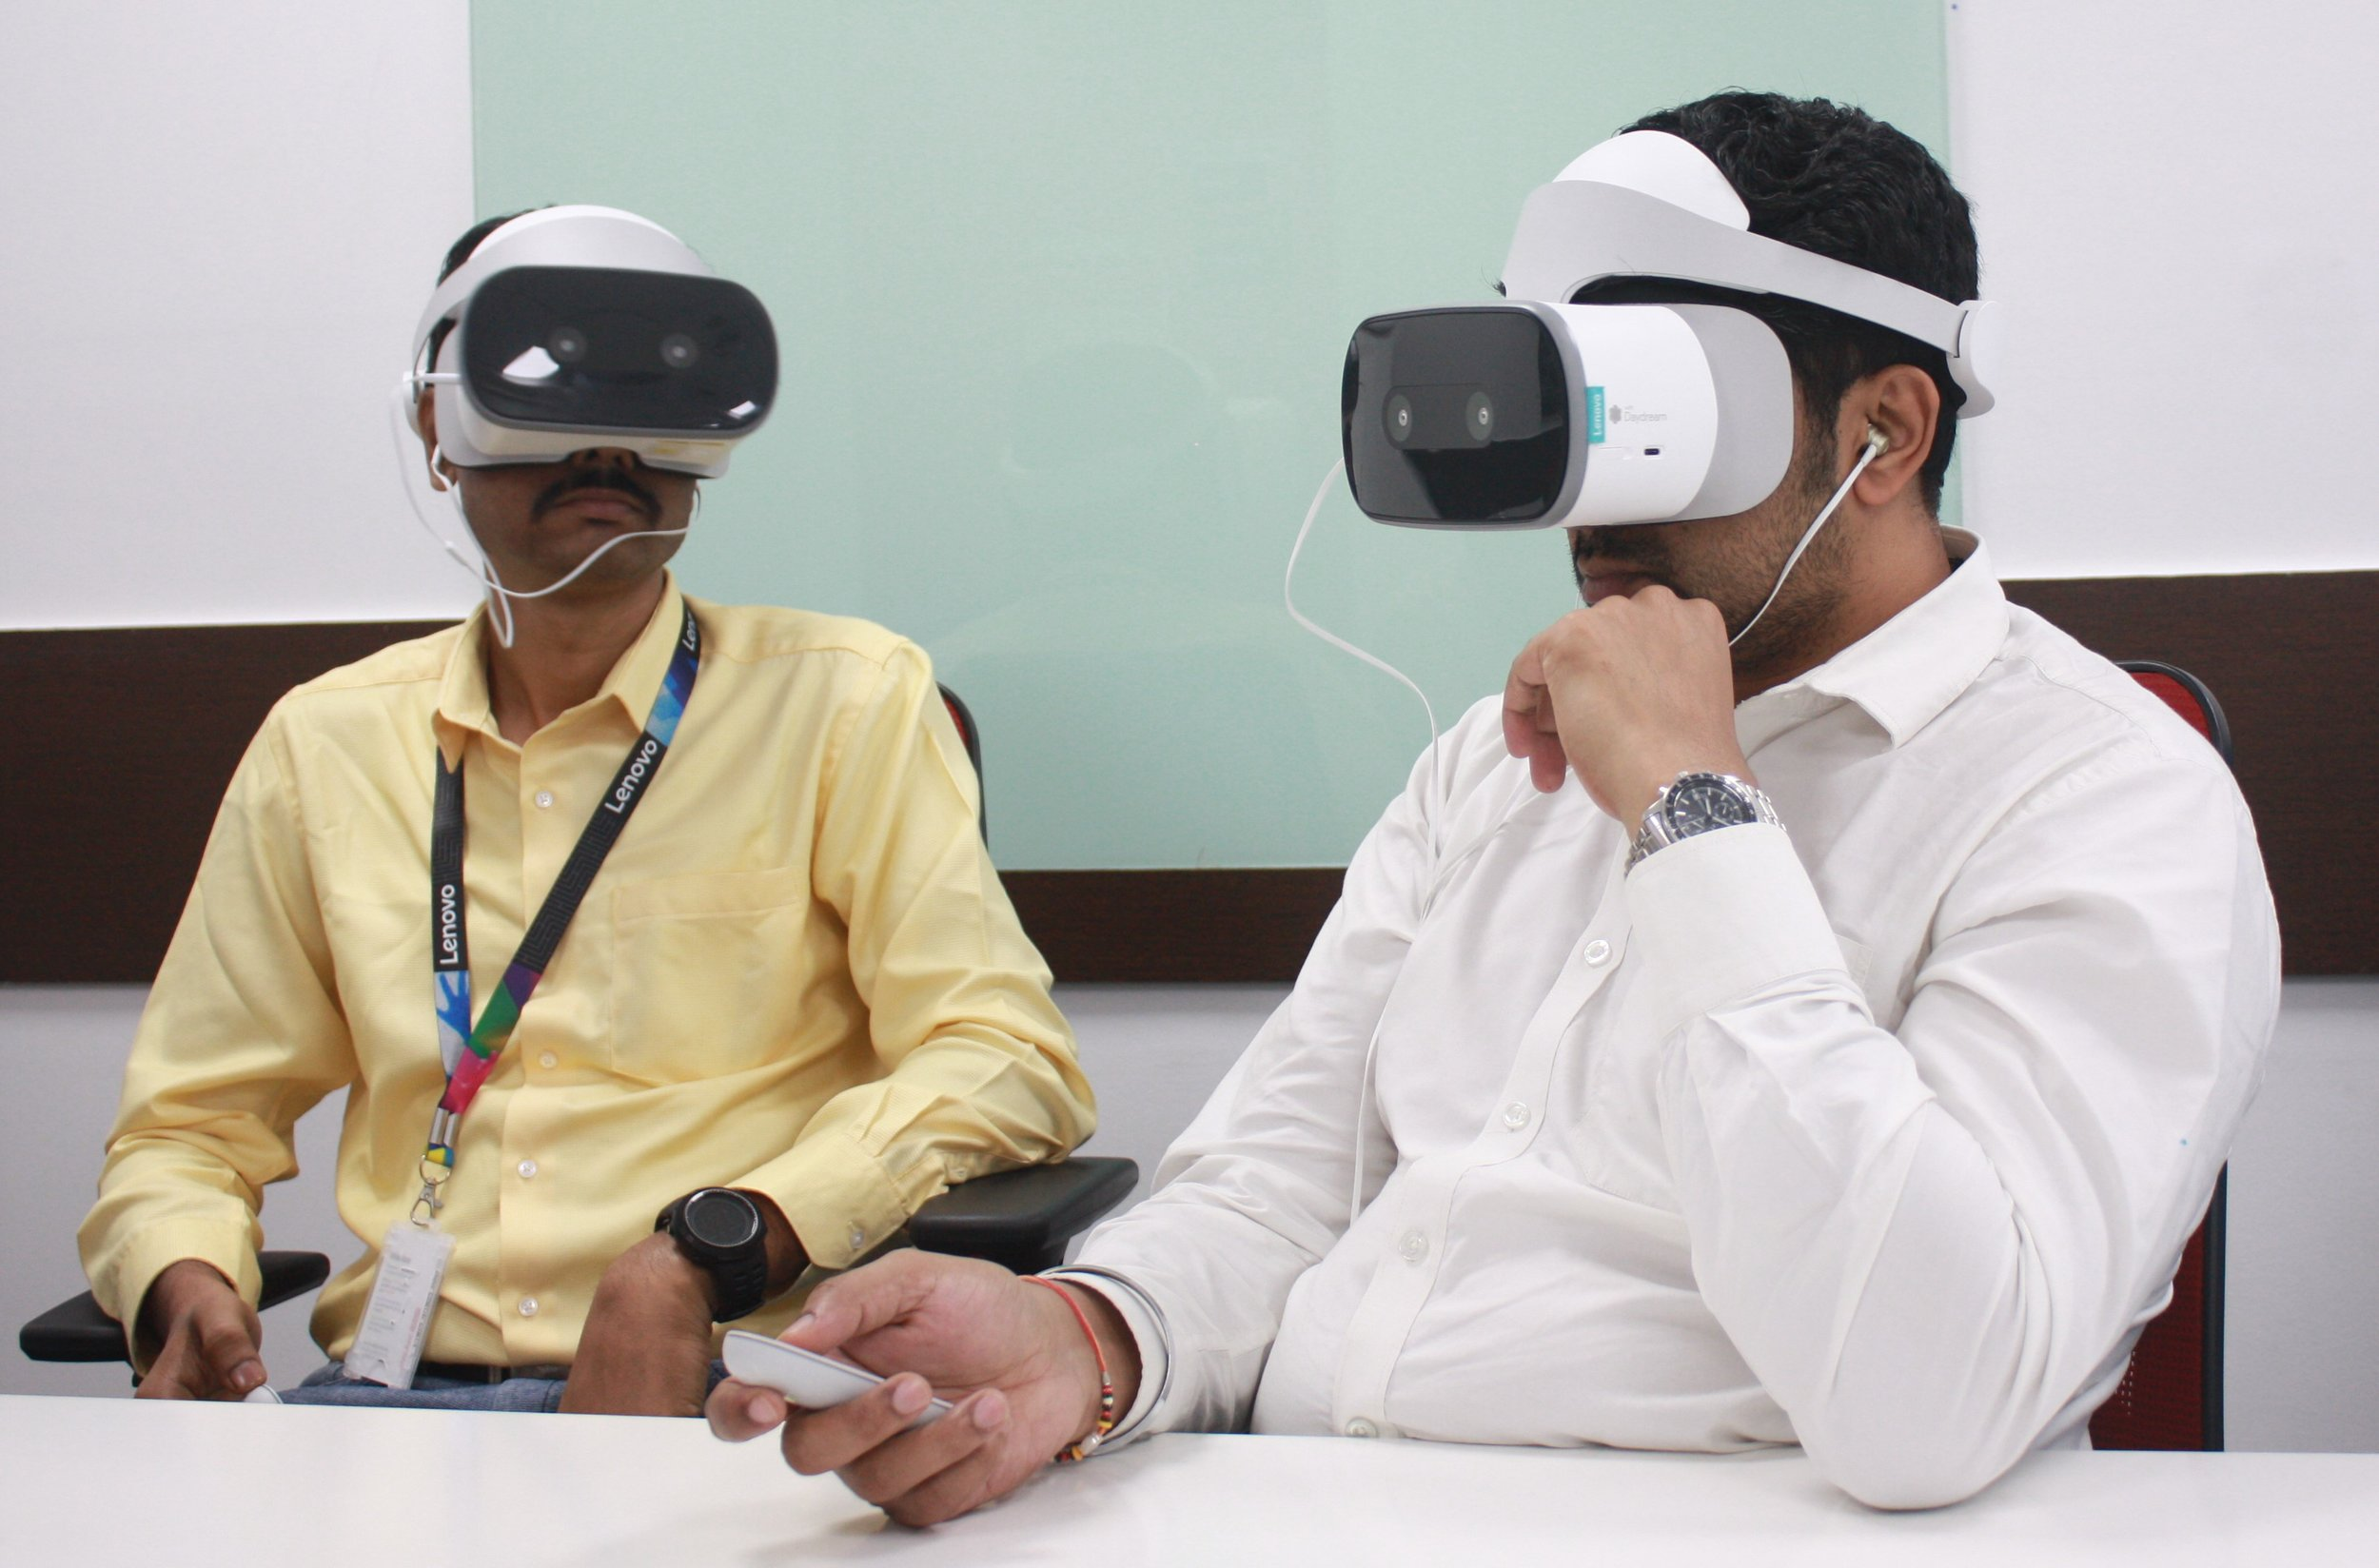 New employees in Asia Pacific learning about Lenovo and its culture with virtual reality Mirage Solo headsets.